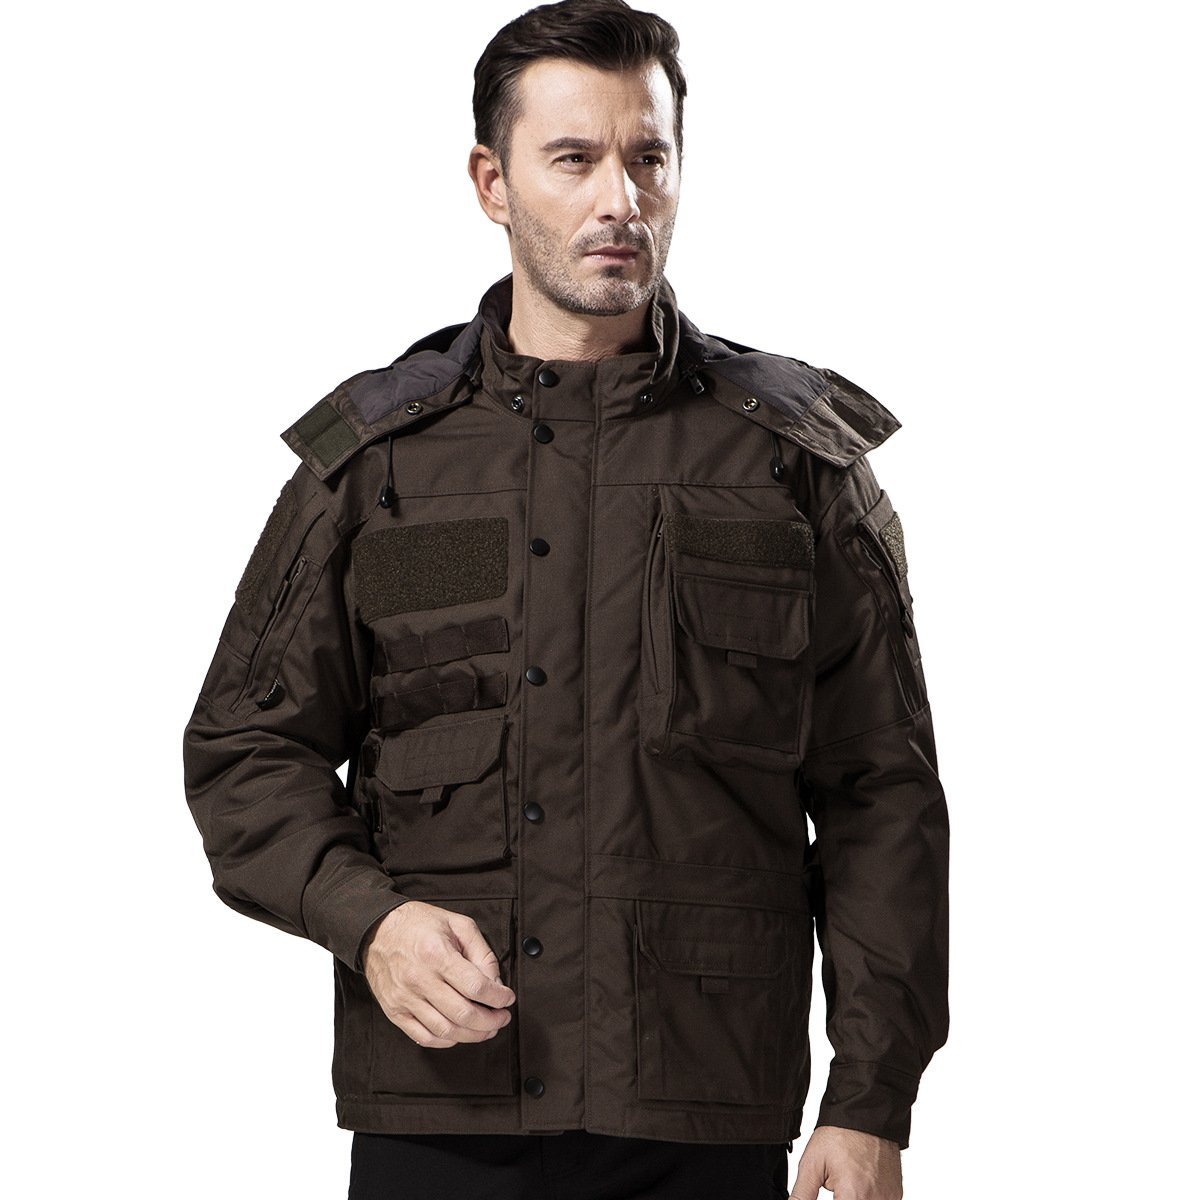 FREE SOLDIER Mens Tactical Jacket Thicken Cotton Parka Cardura Multi Pocket Outwear Coat Hooded Waterproof Jacket